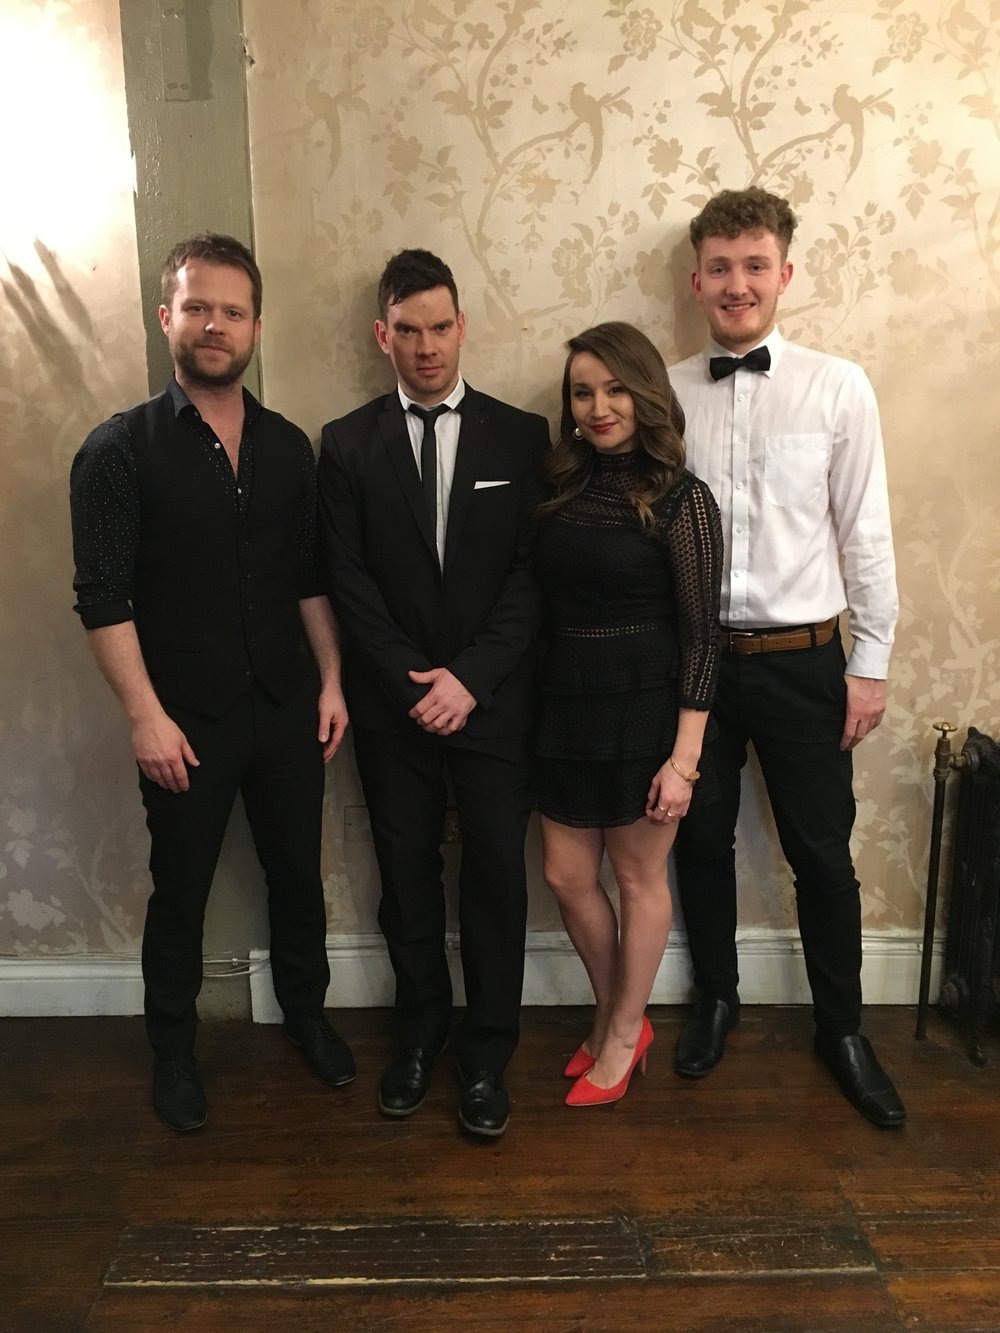 The Carly Coonagh Quartet